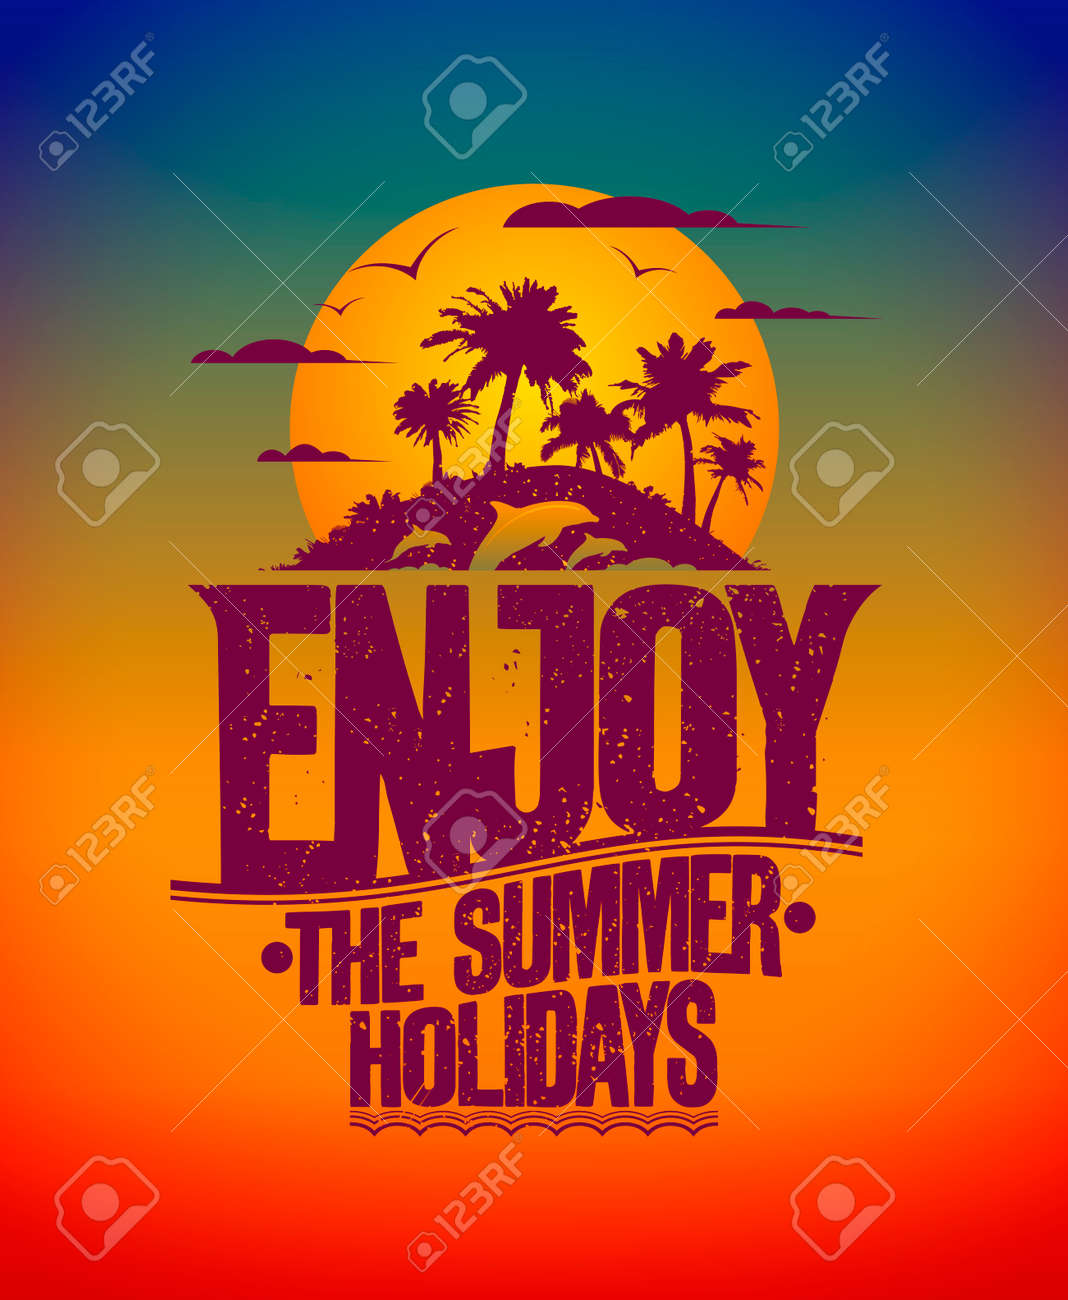 Happy Vacation Card With Tropical Island At Sunset And Silhouettes Of Dolphins Enjoy The Summer